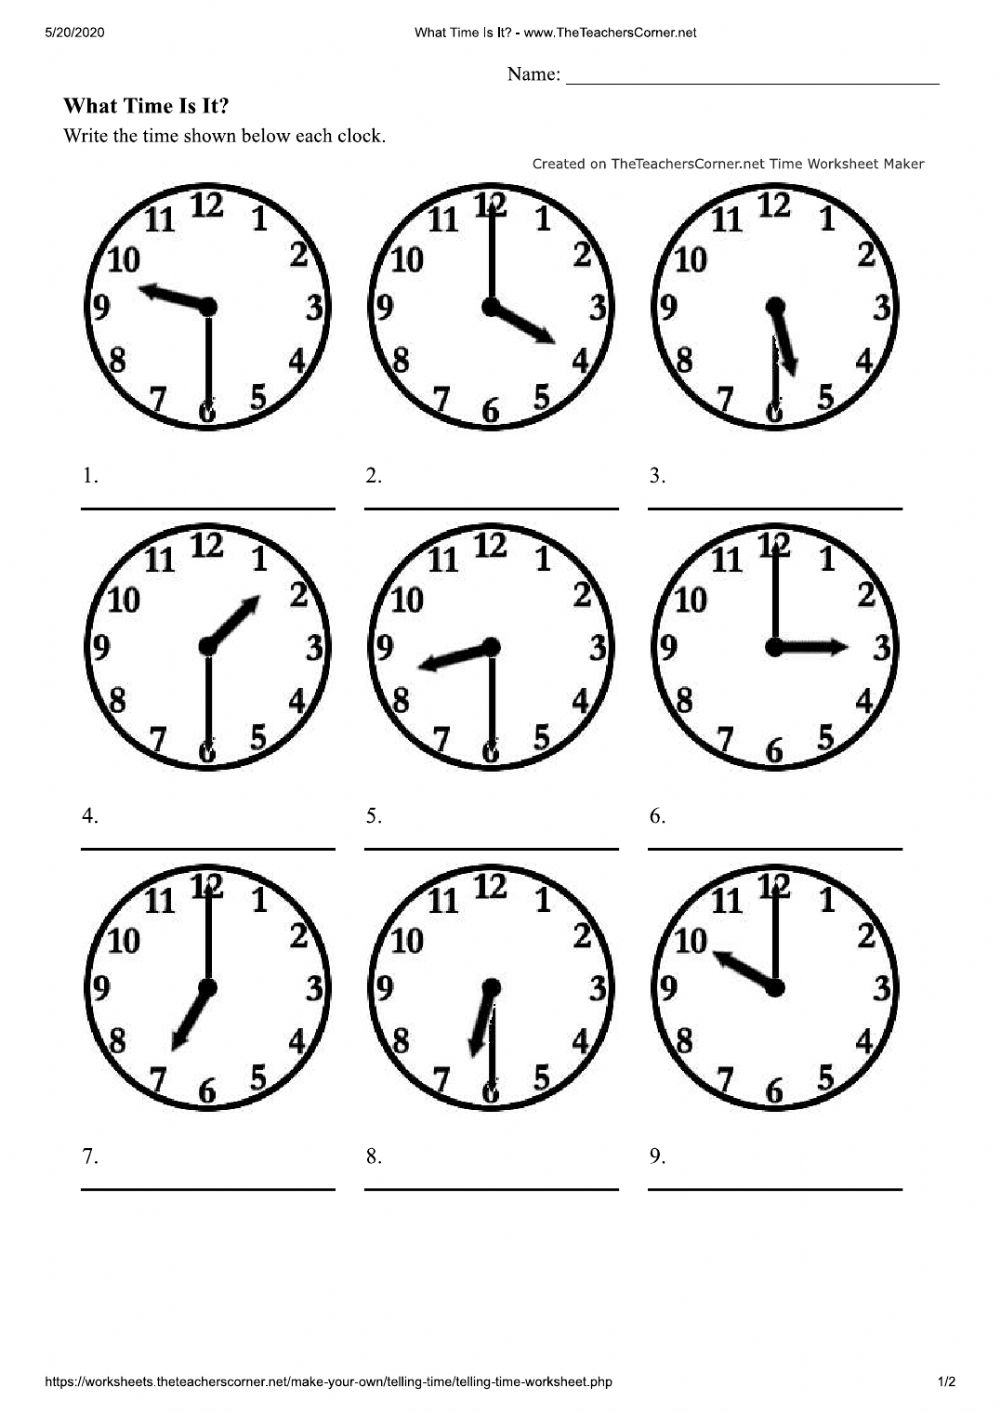 What Time Is It - Half Hours worksheet